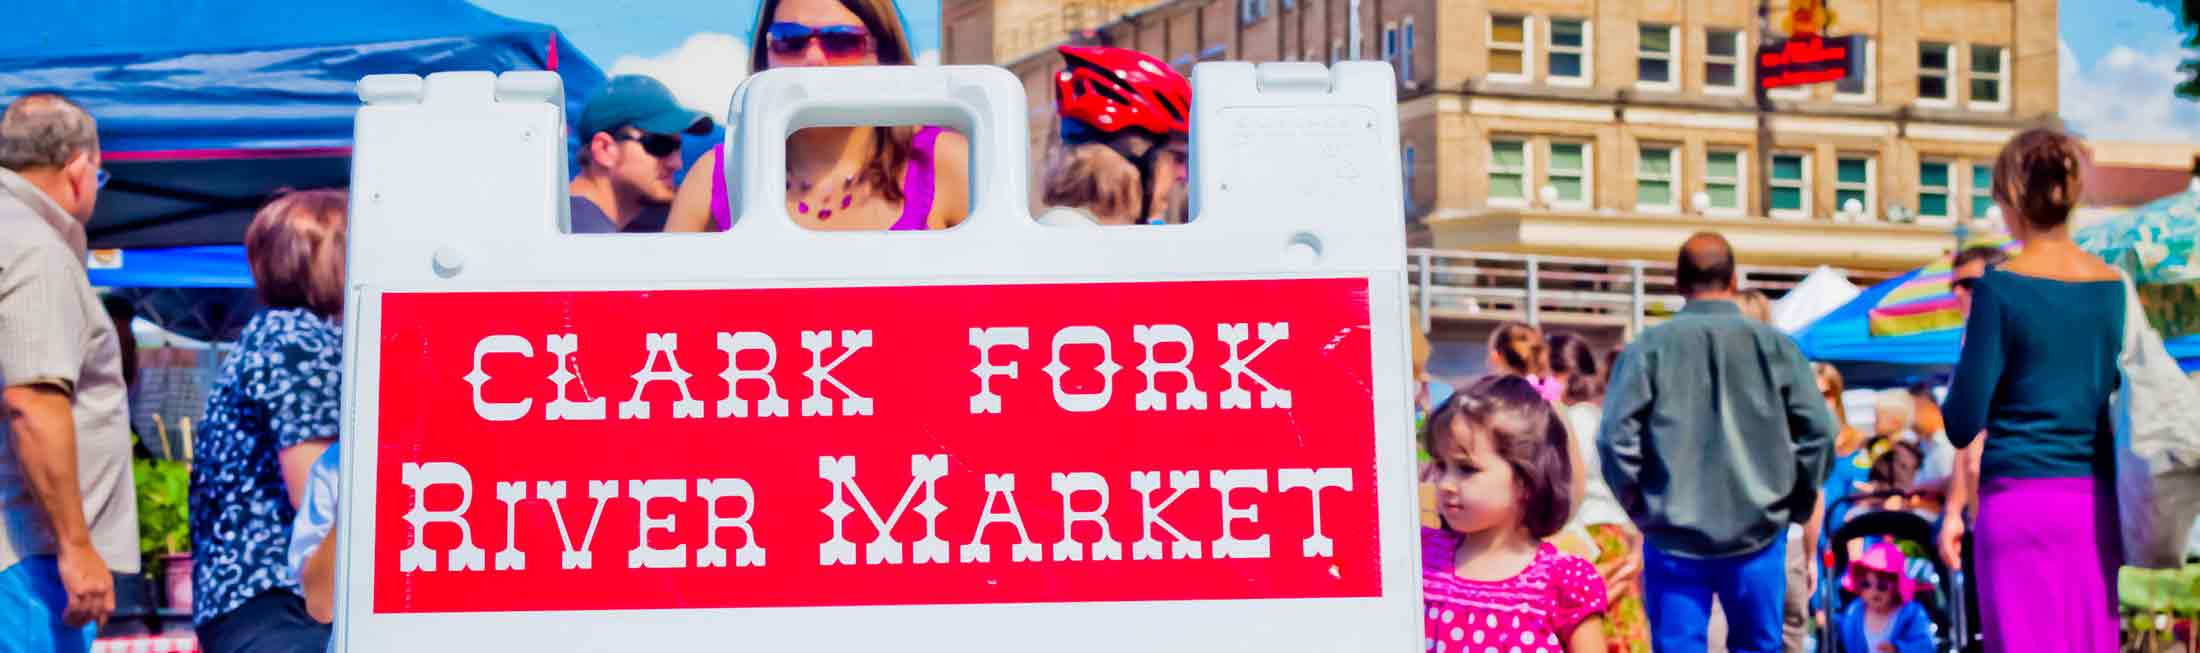 The Clark Fork River Market in Downtown Missoula